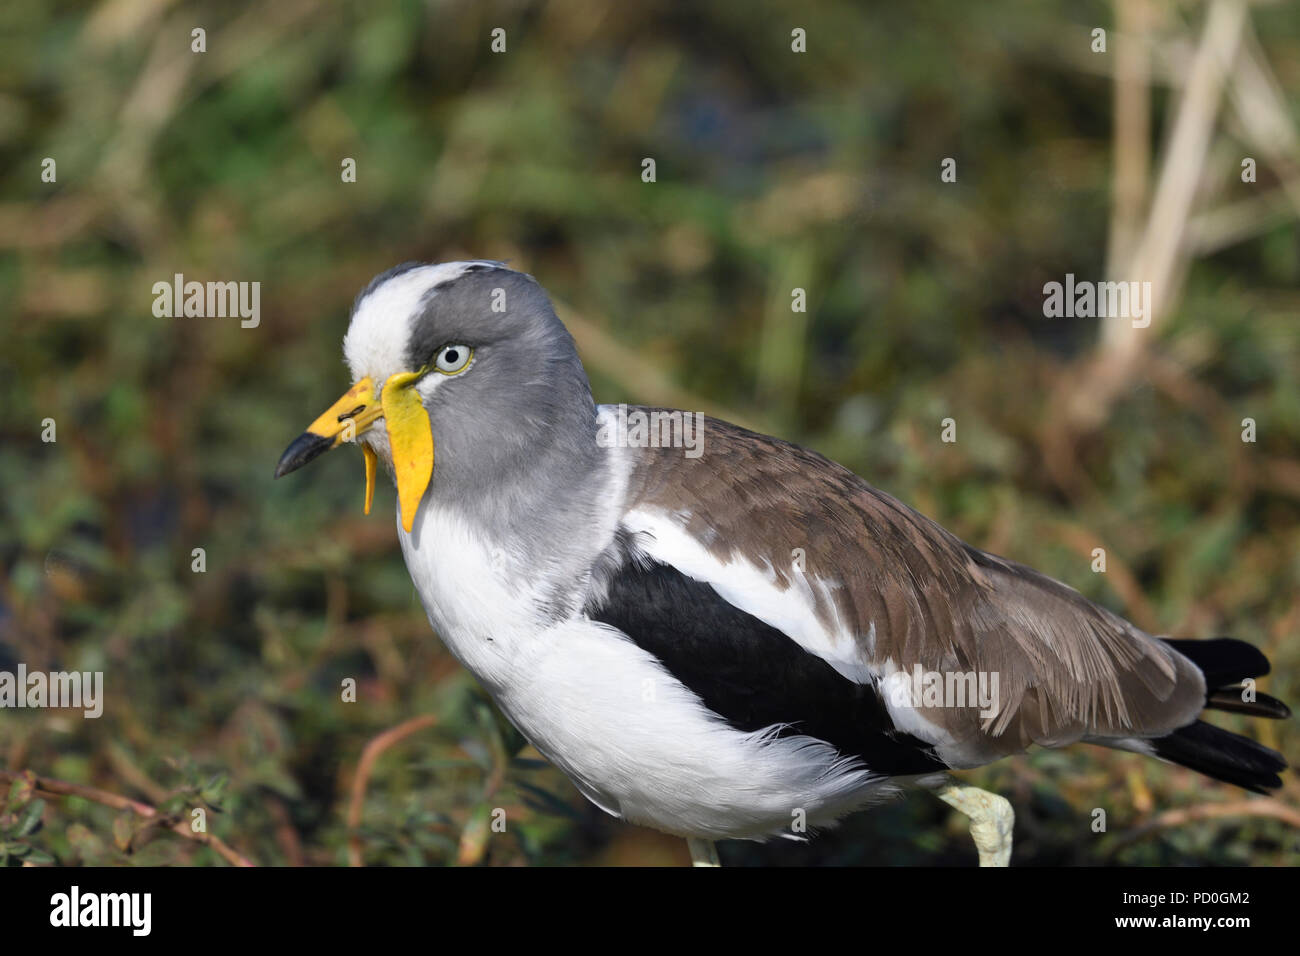 South Africa, a fantastic travel destination to experience third and first world together. White crowned lapwing close-up. Kruger Park. - Stock Image